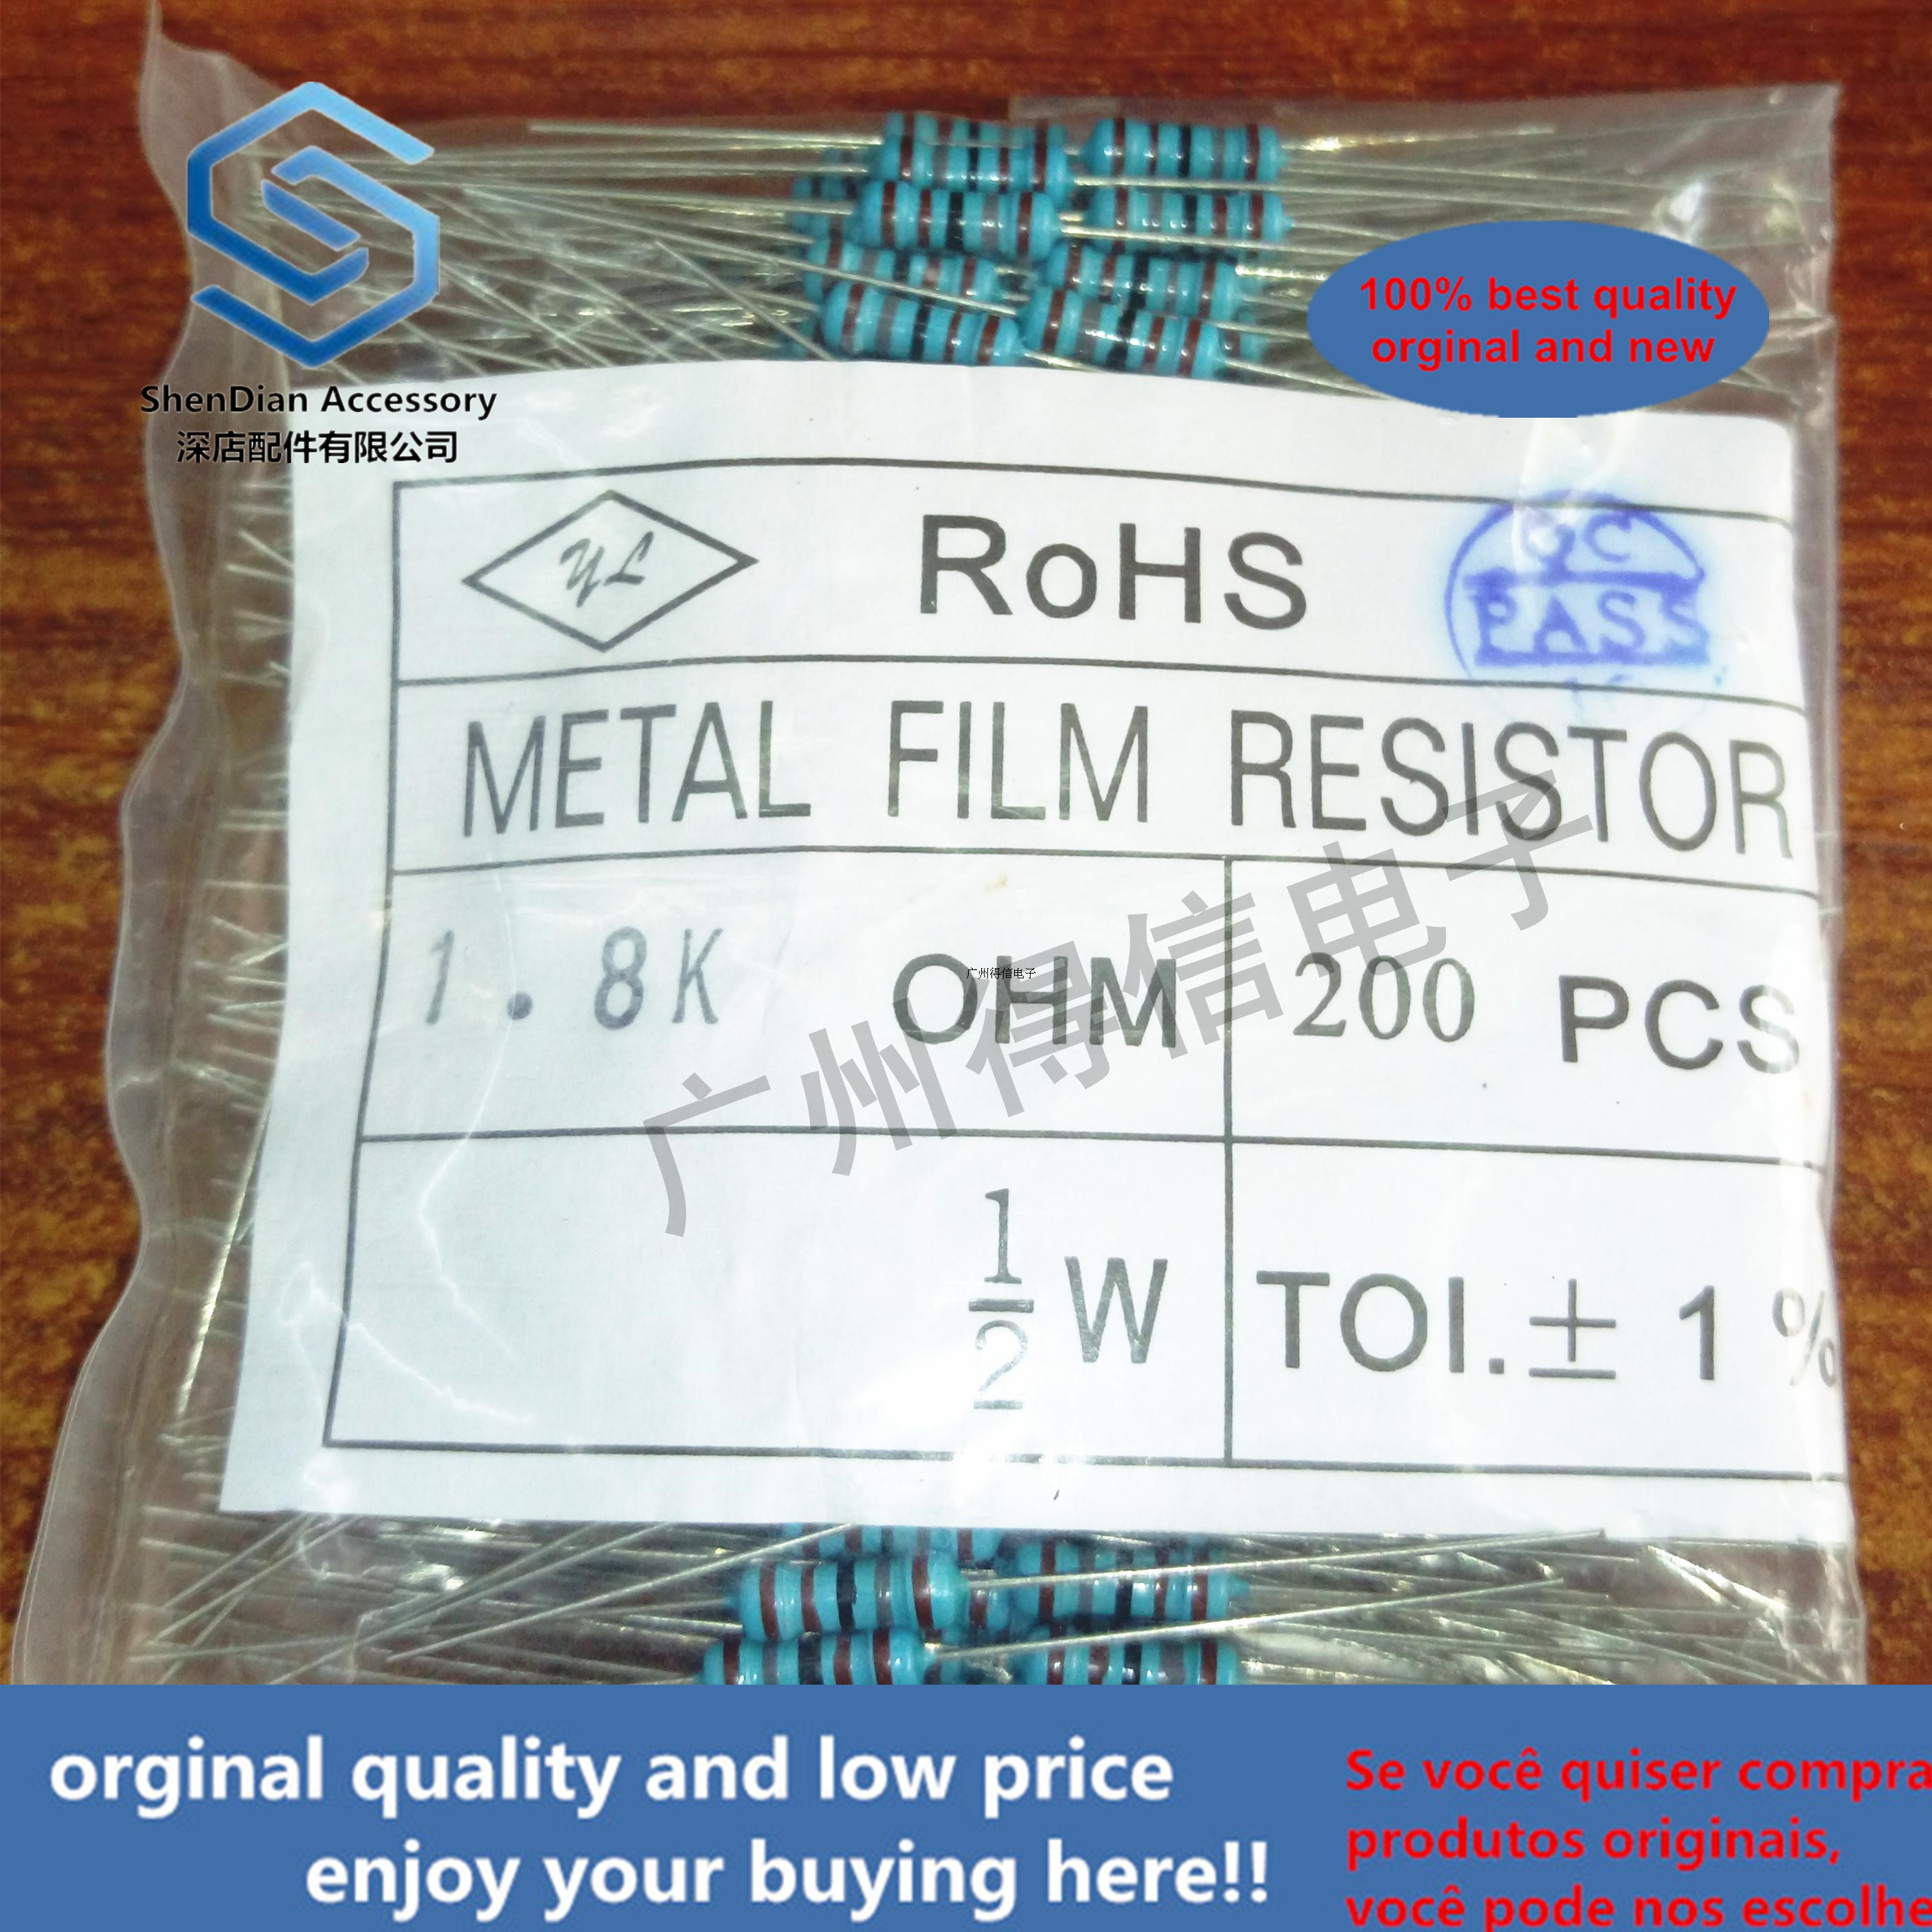 200pcs 1 / 2W 5.6K 5600 Euro 1% Brand New Metal Film Iron Feet Resistor Bag 200 Pcs Per Pack